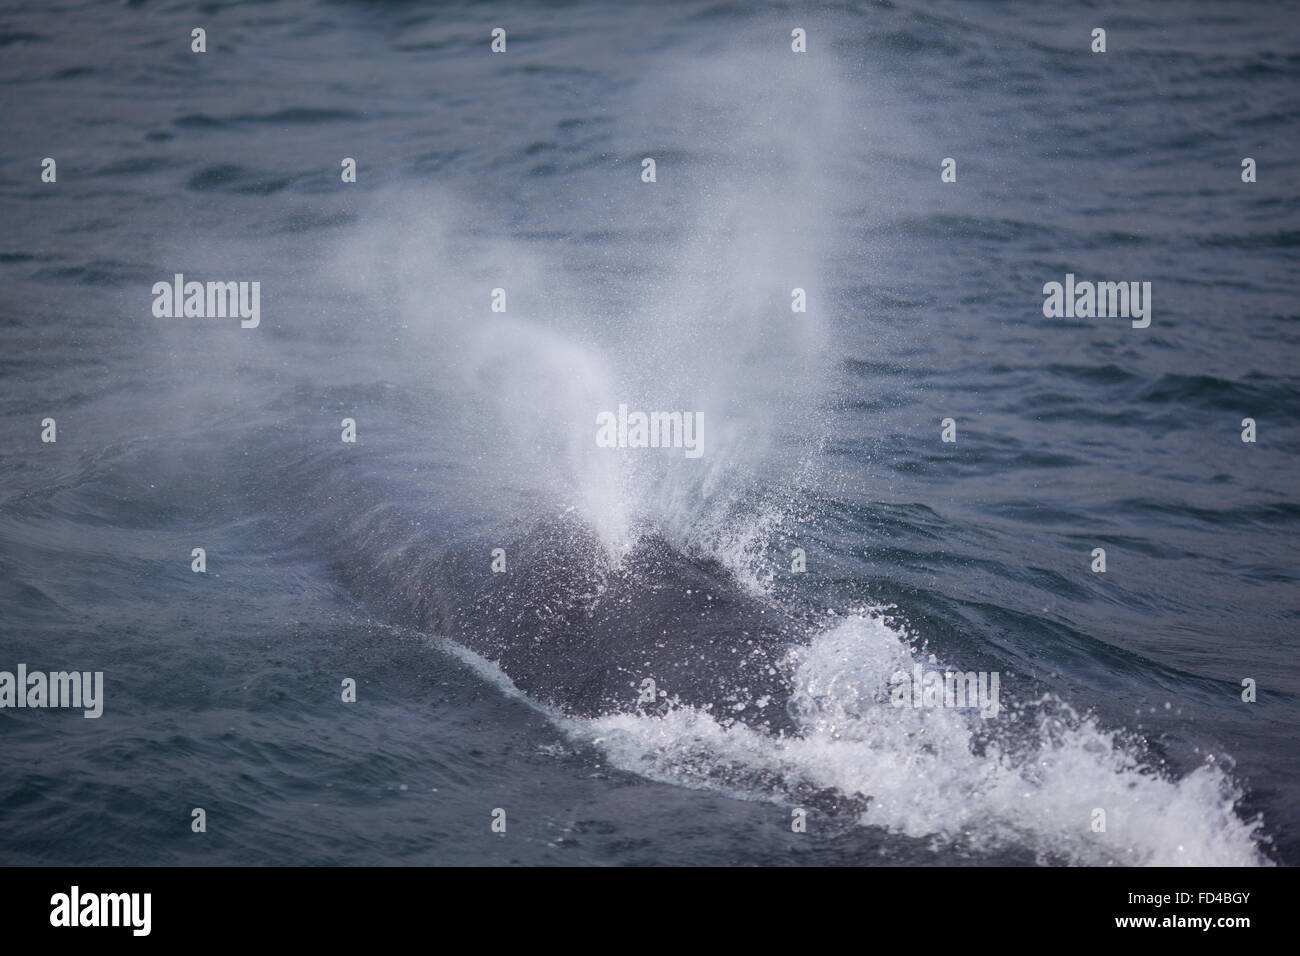 Humpback Whale Spraying While Swimming In Sea Stock Photo